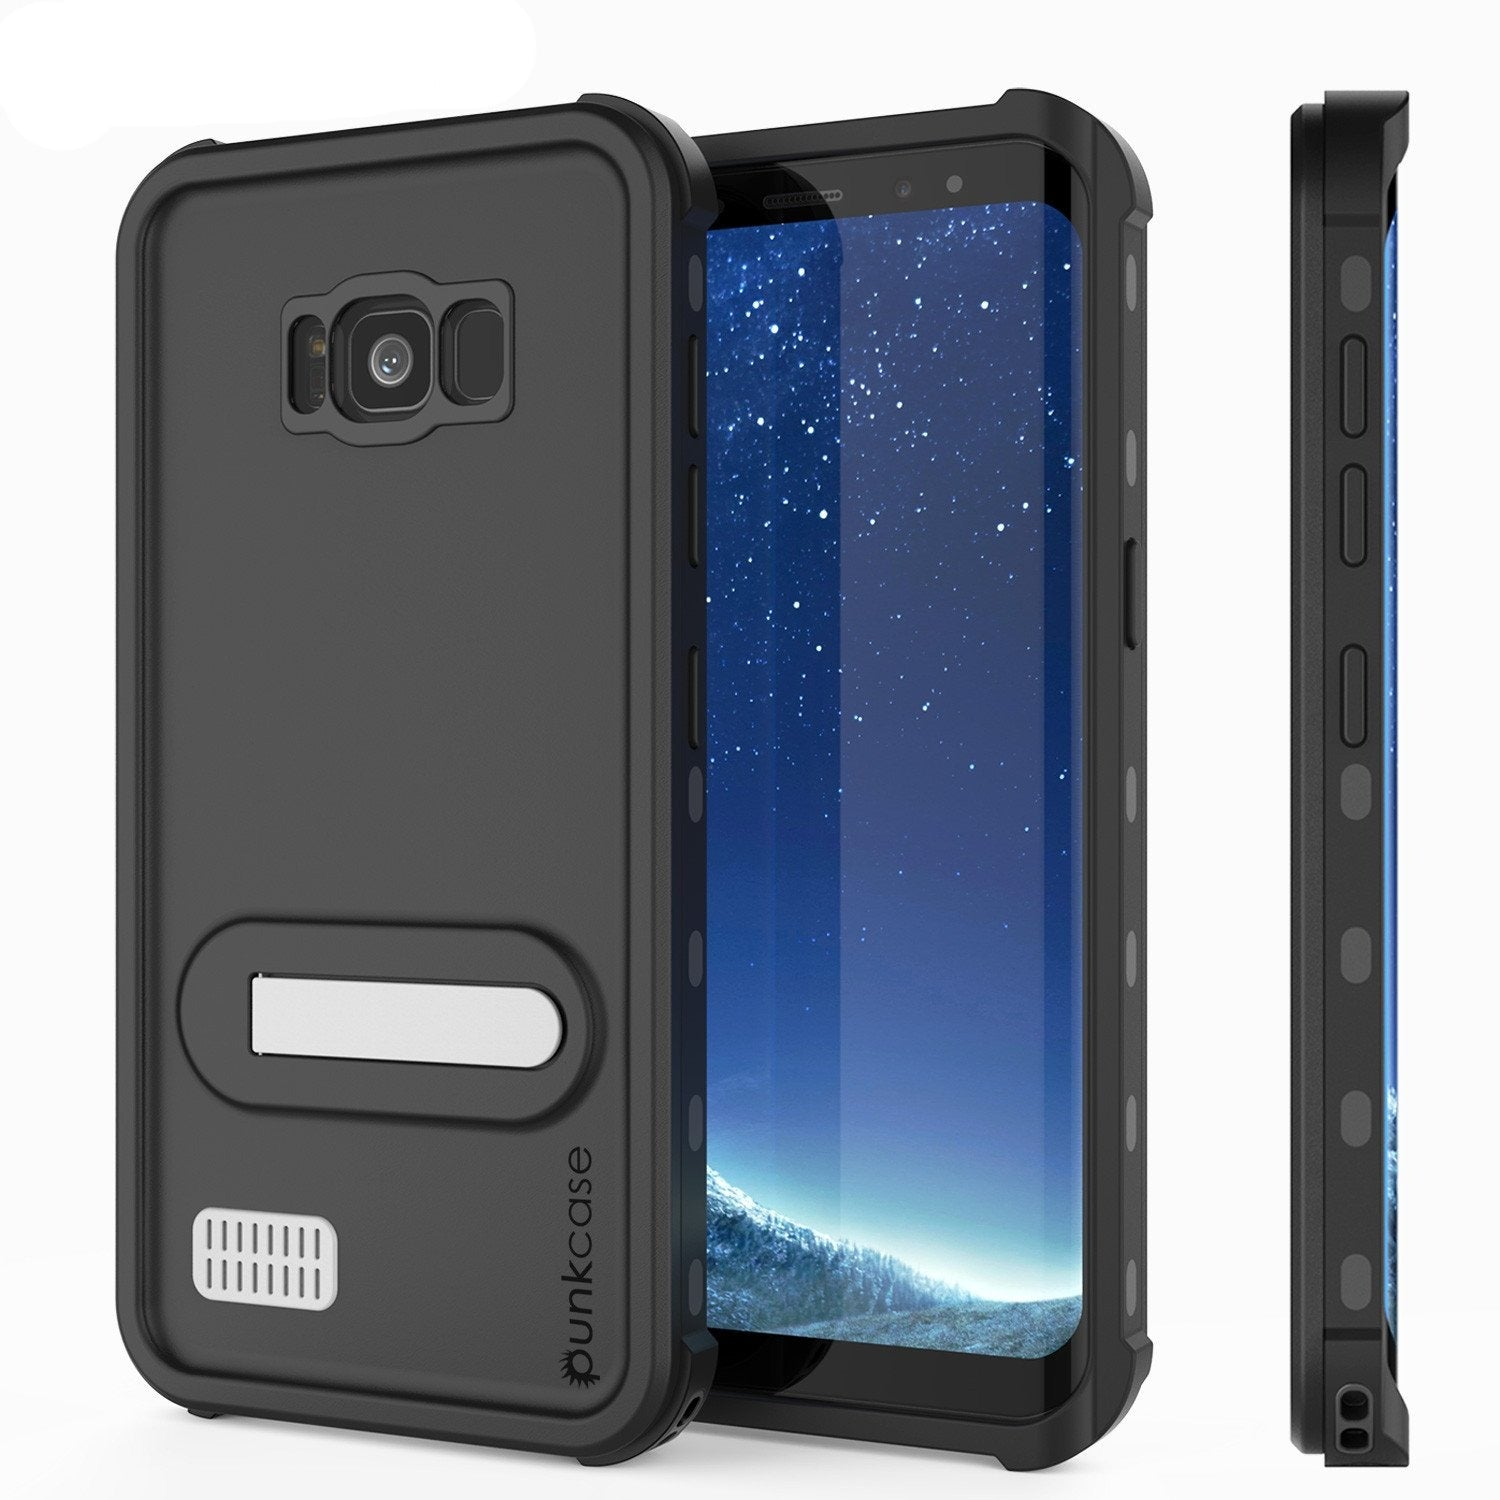 Galaxy S8 Waterproof Case, Punkcase [KickStud Series] [Slim Fit] [IP68 Certified] [Shockproof] [Snowproof] Armor Cover W/ Built-In Kickstand [BLACK]